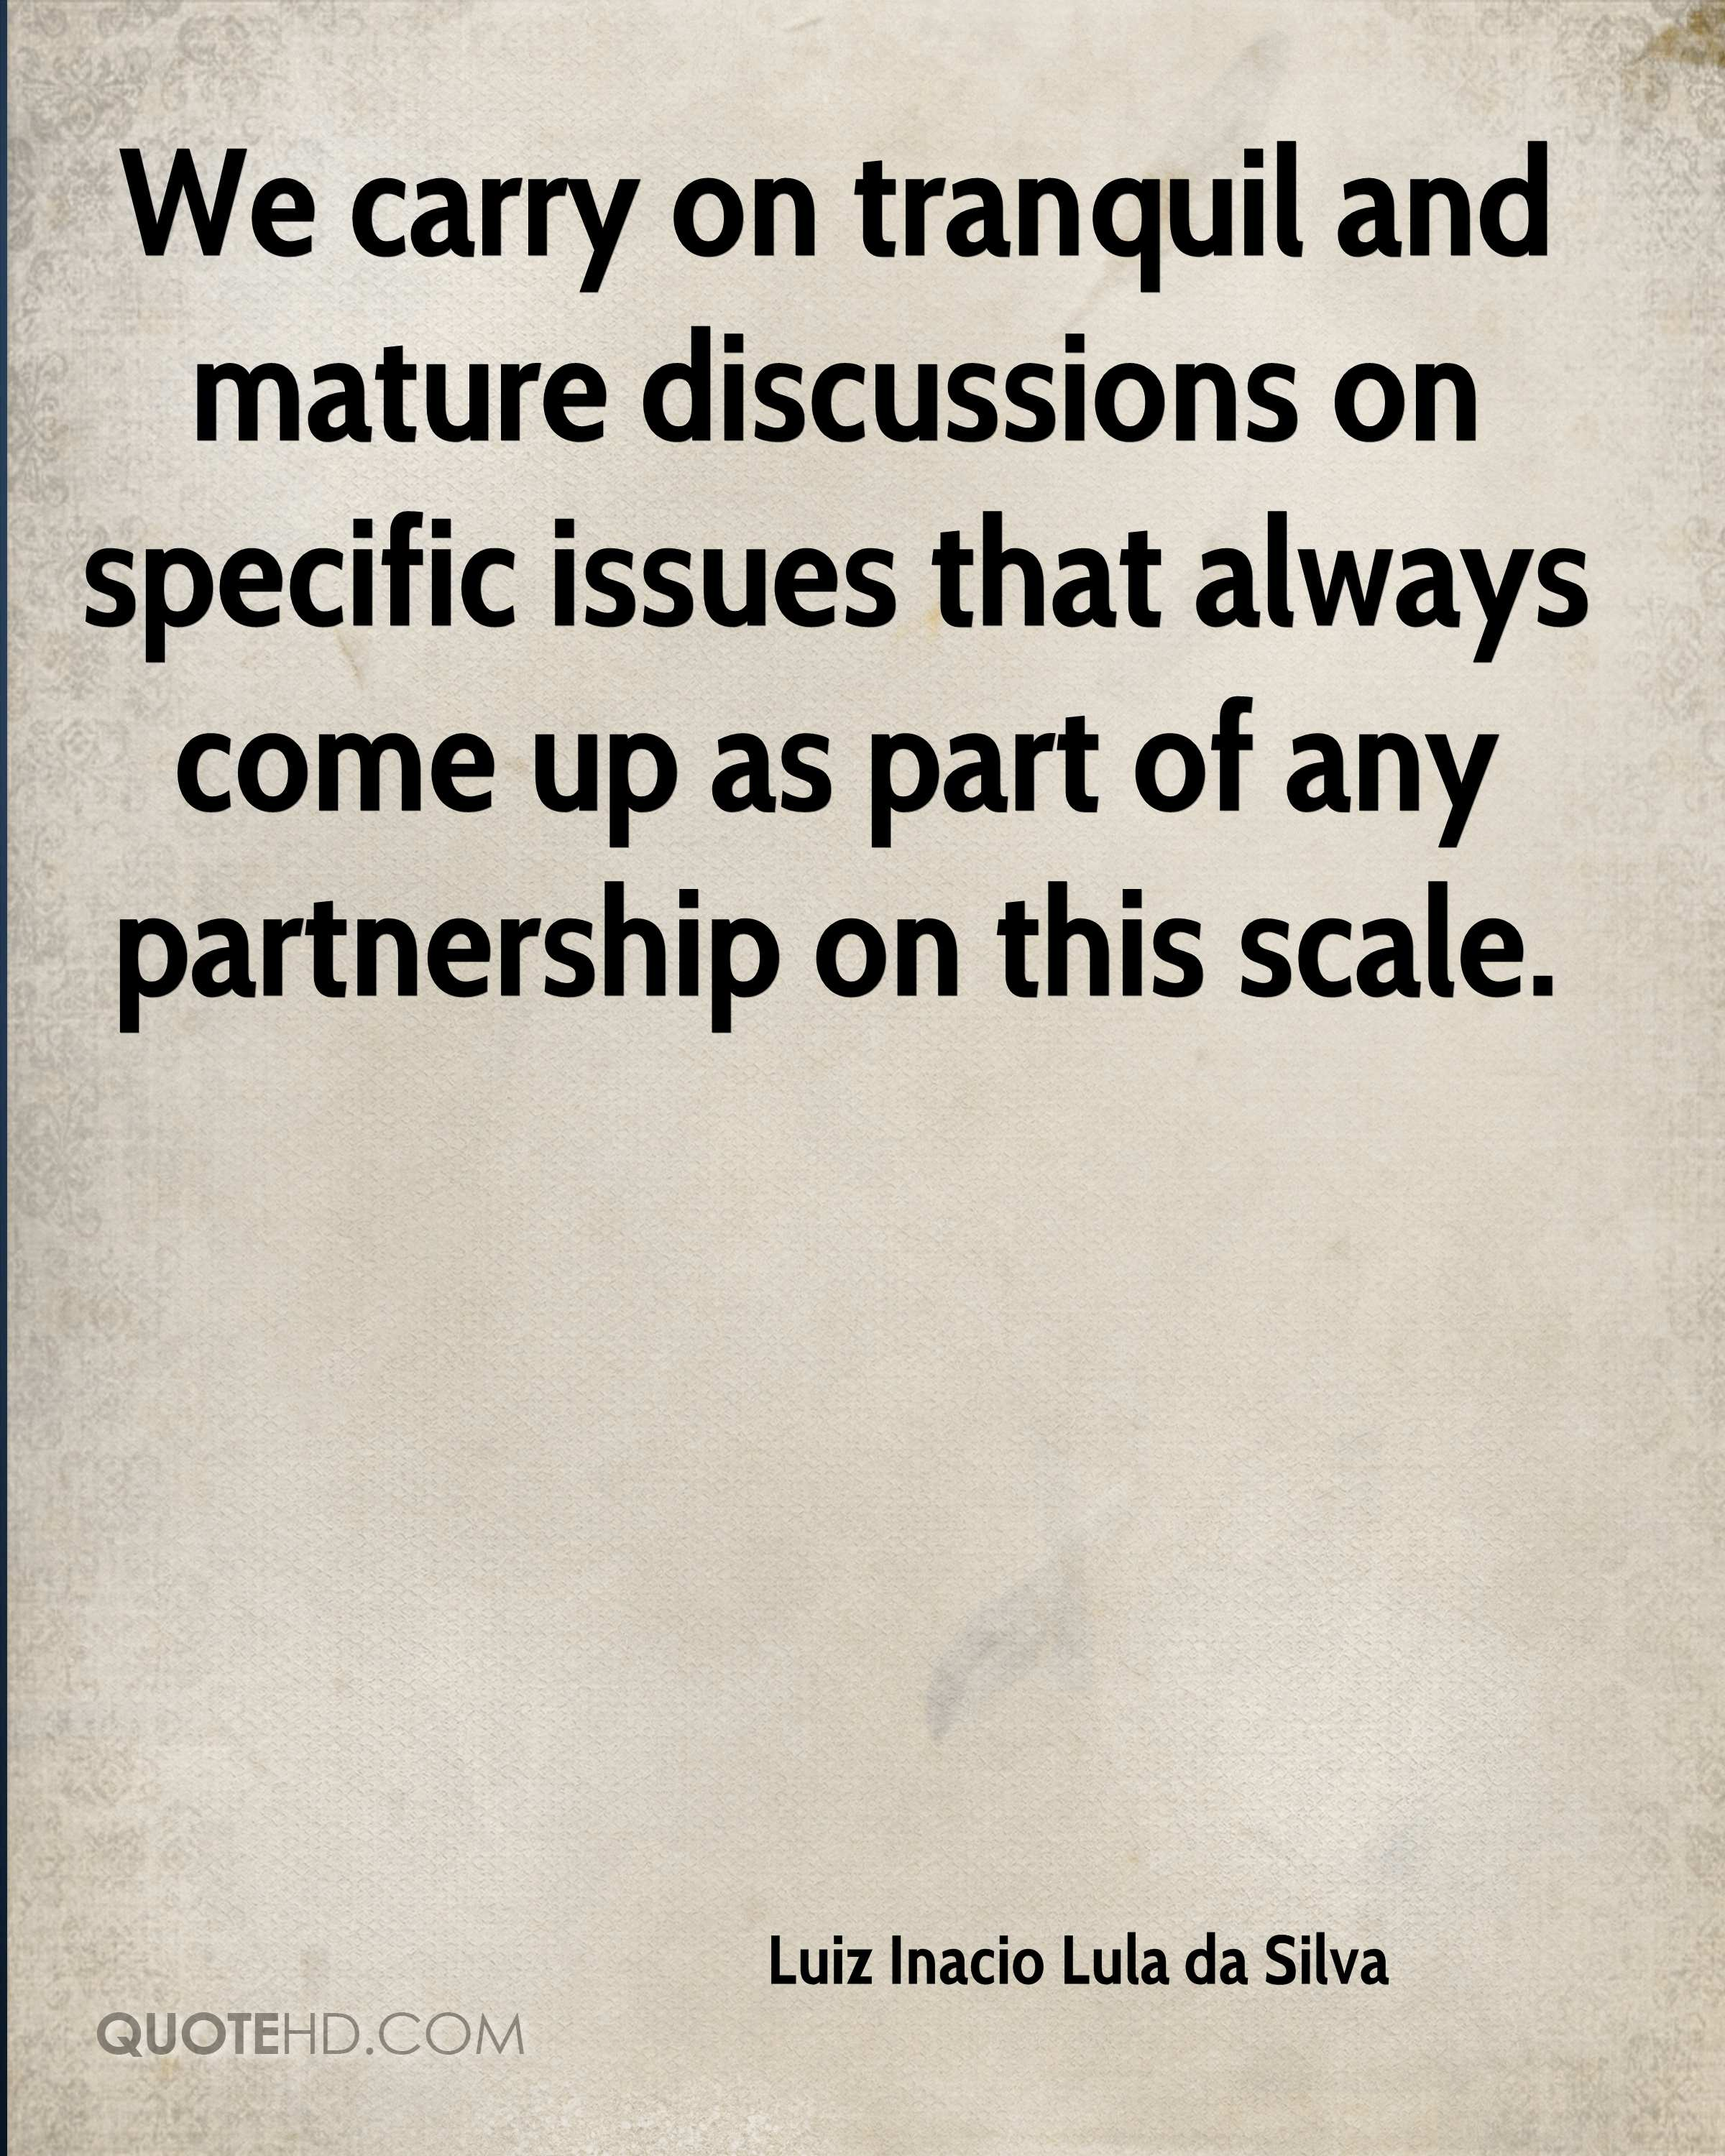 We carry on tranquil and mature discussions on specific issues that always come up as part of any partnership on this scale.